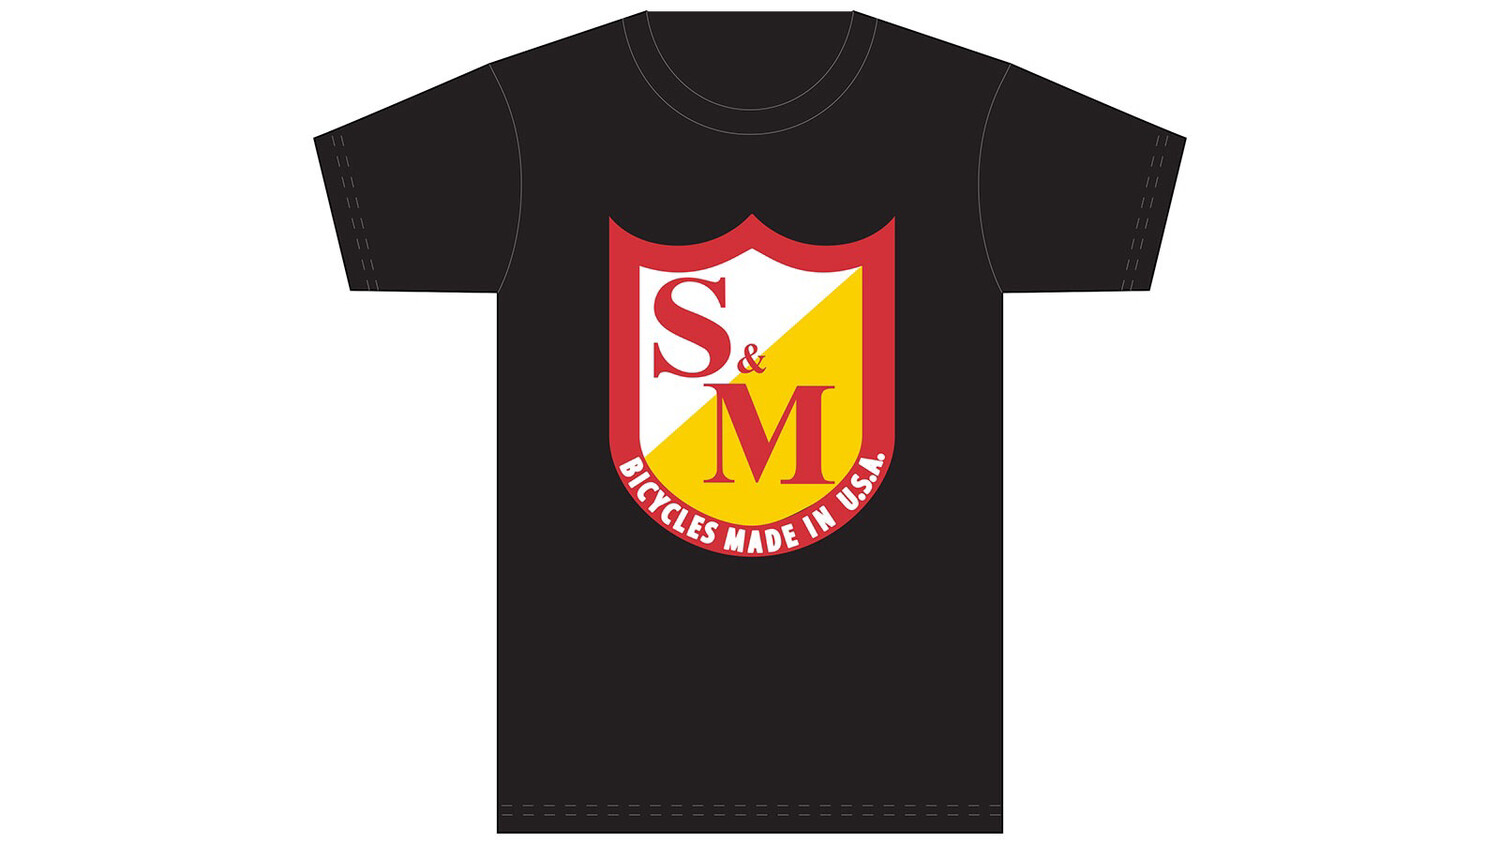 S&m Summer '19 T/shirt Collection